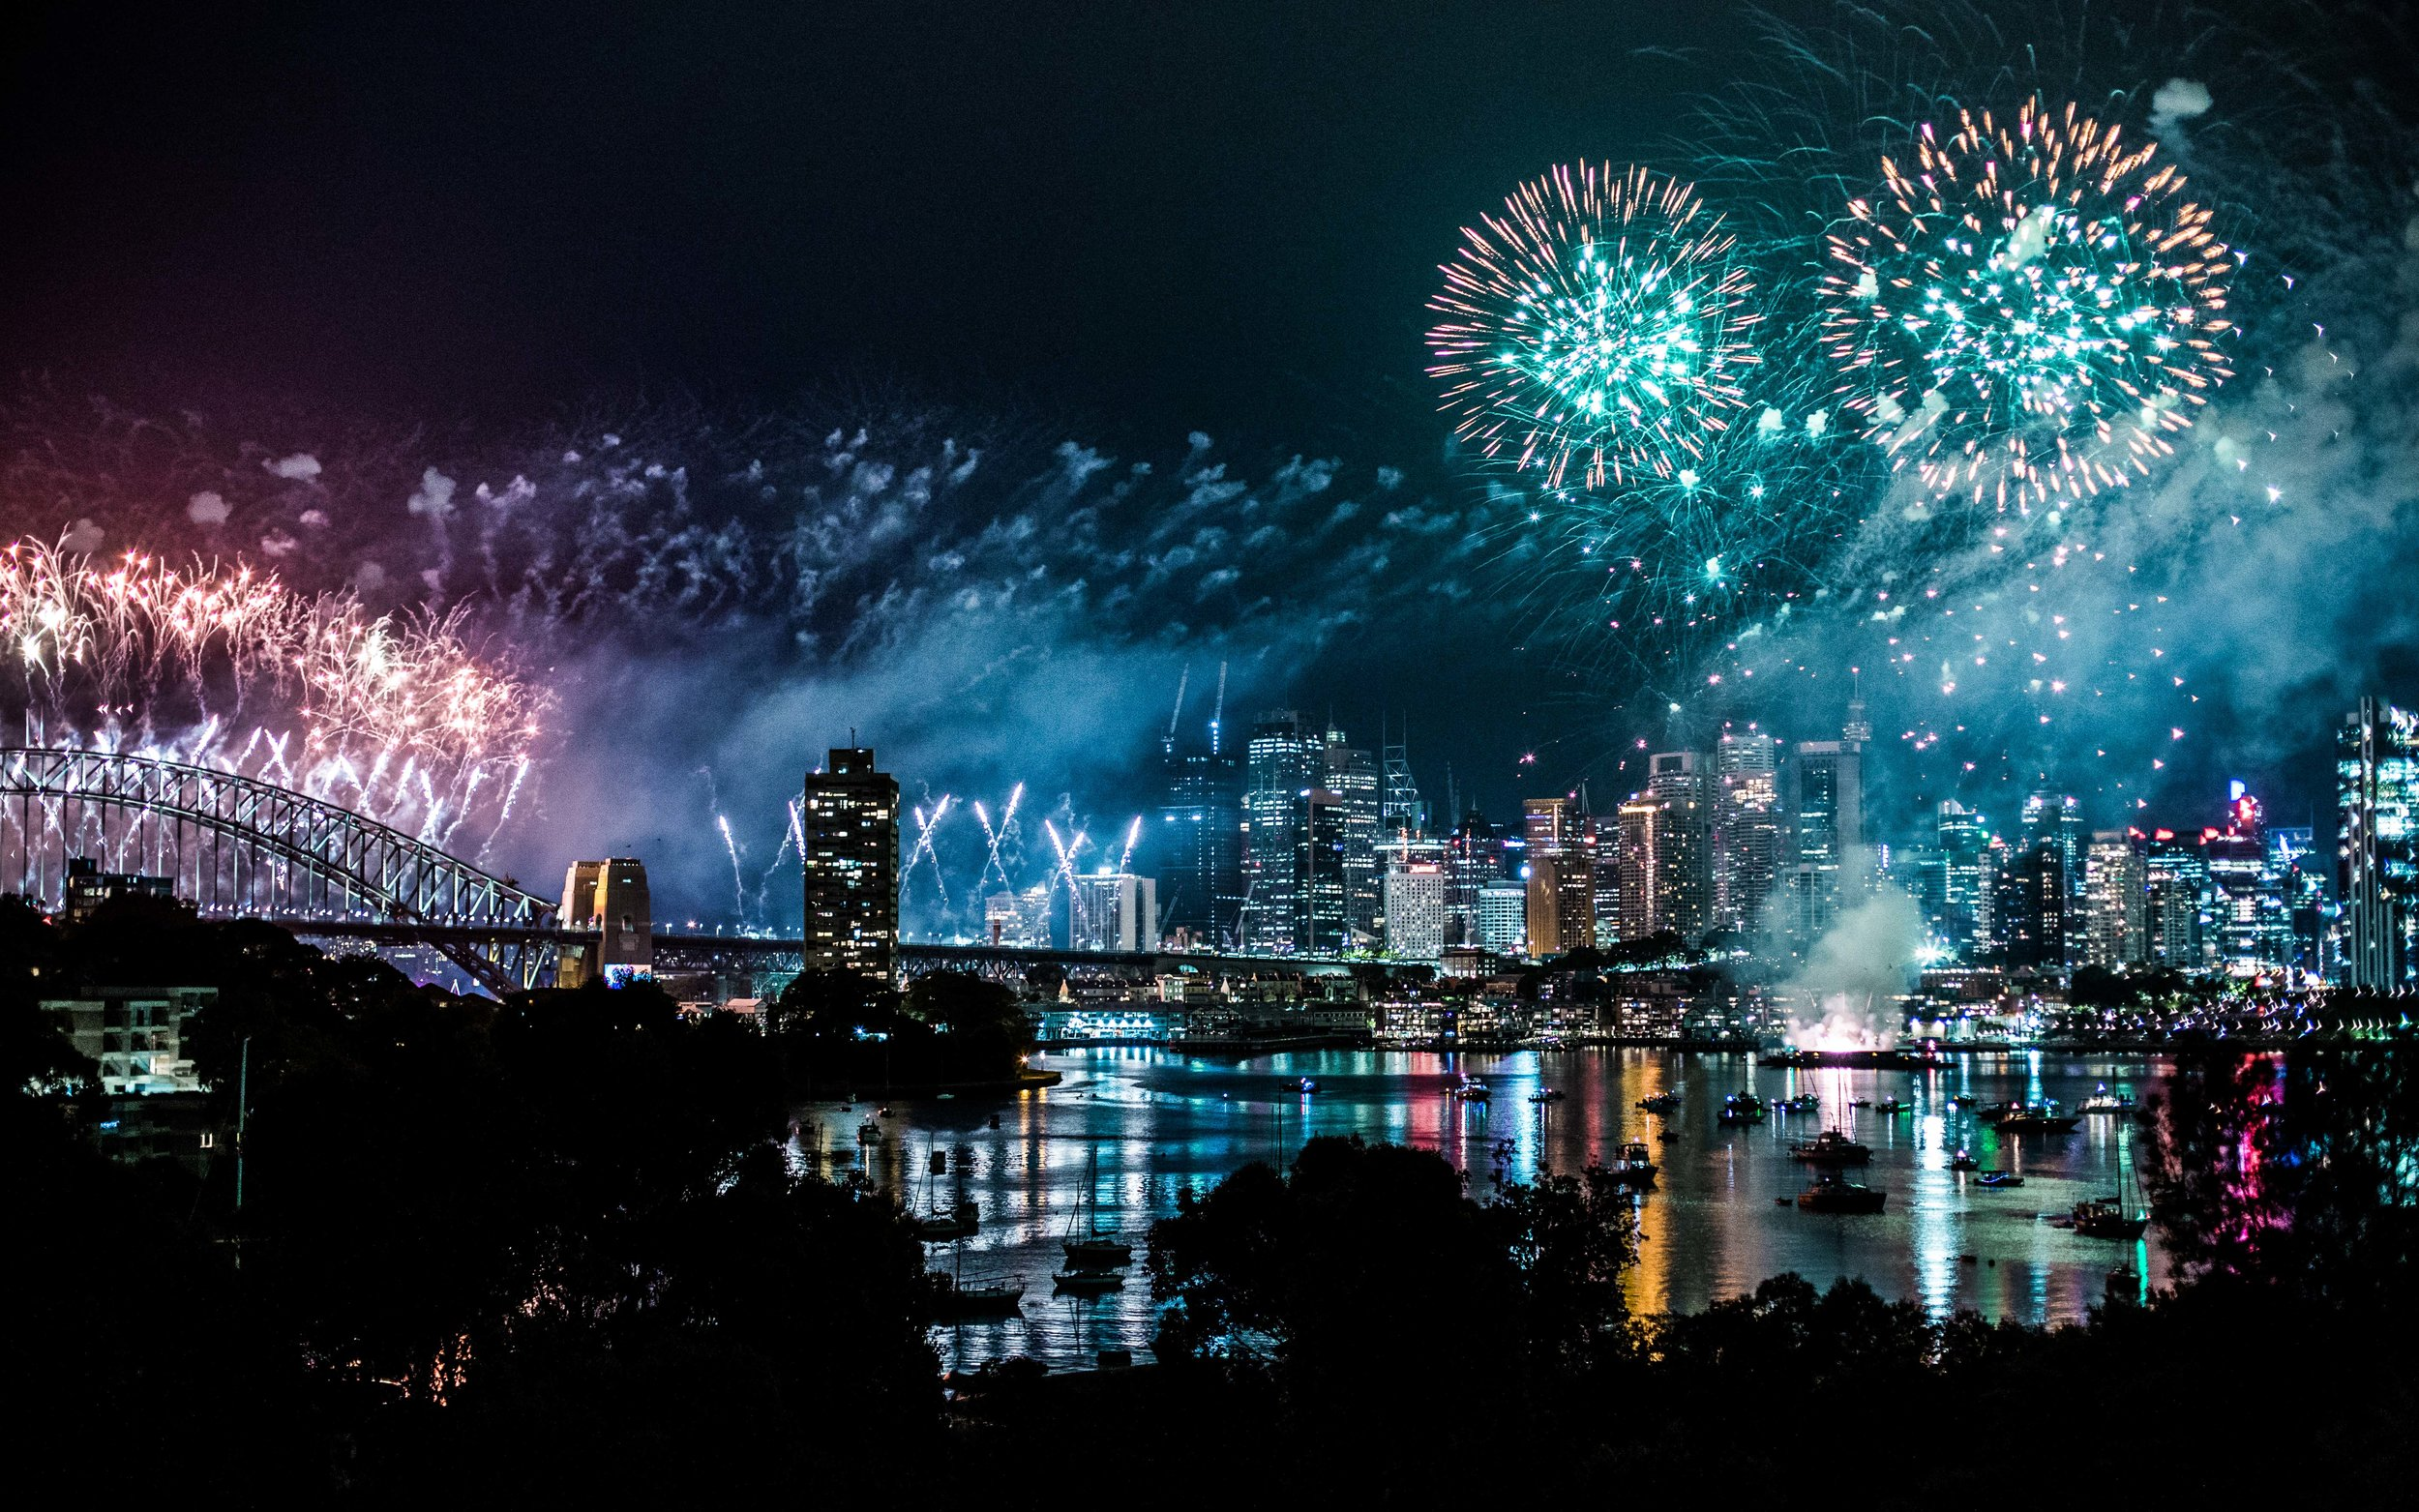 New Year's Eve fireworks at midnight over Sydney Harbour, viewed from the balcony of Sydney Opera House.